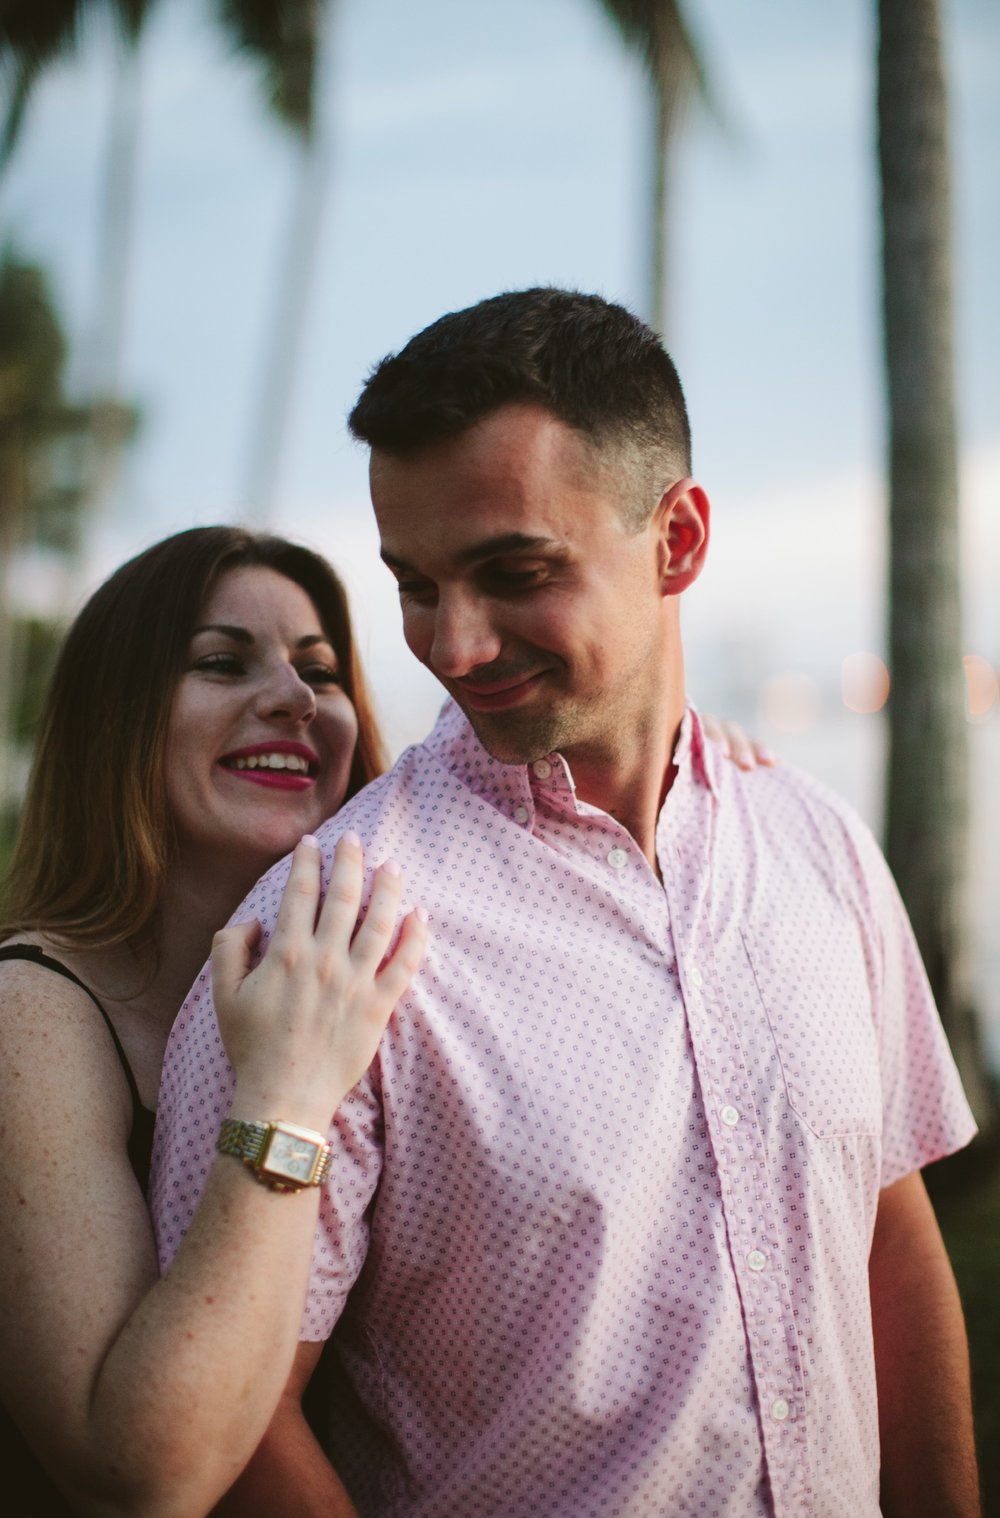 Ida + Danny Surprise Proposal Engagement Shoot at Flagler Museum Palm Beach15.jpg